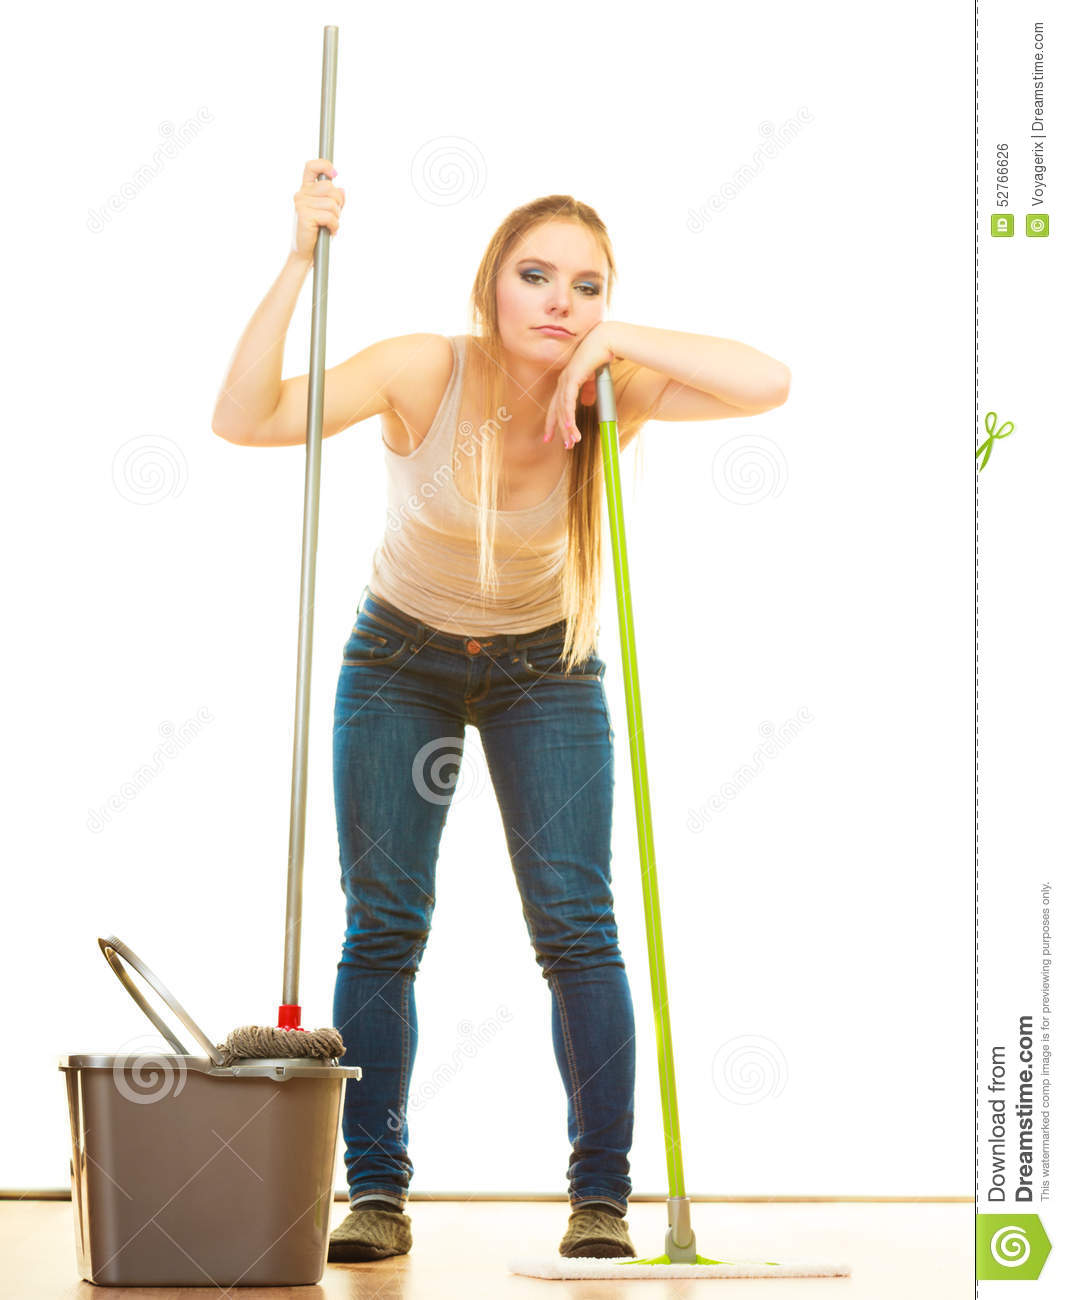 Spring Cleanup Tired Cleaning Woman Mopping Floor Stock Photo Image Of